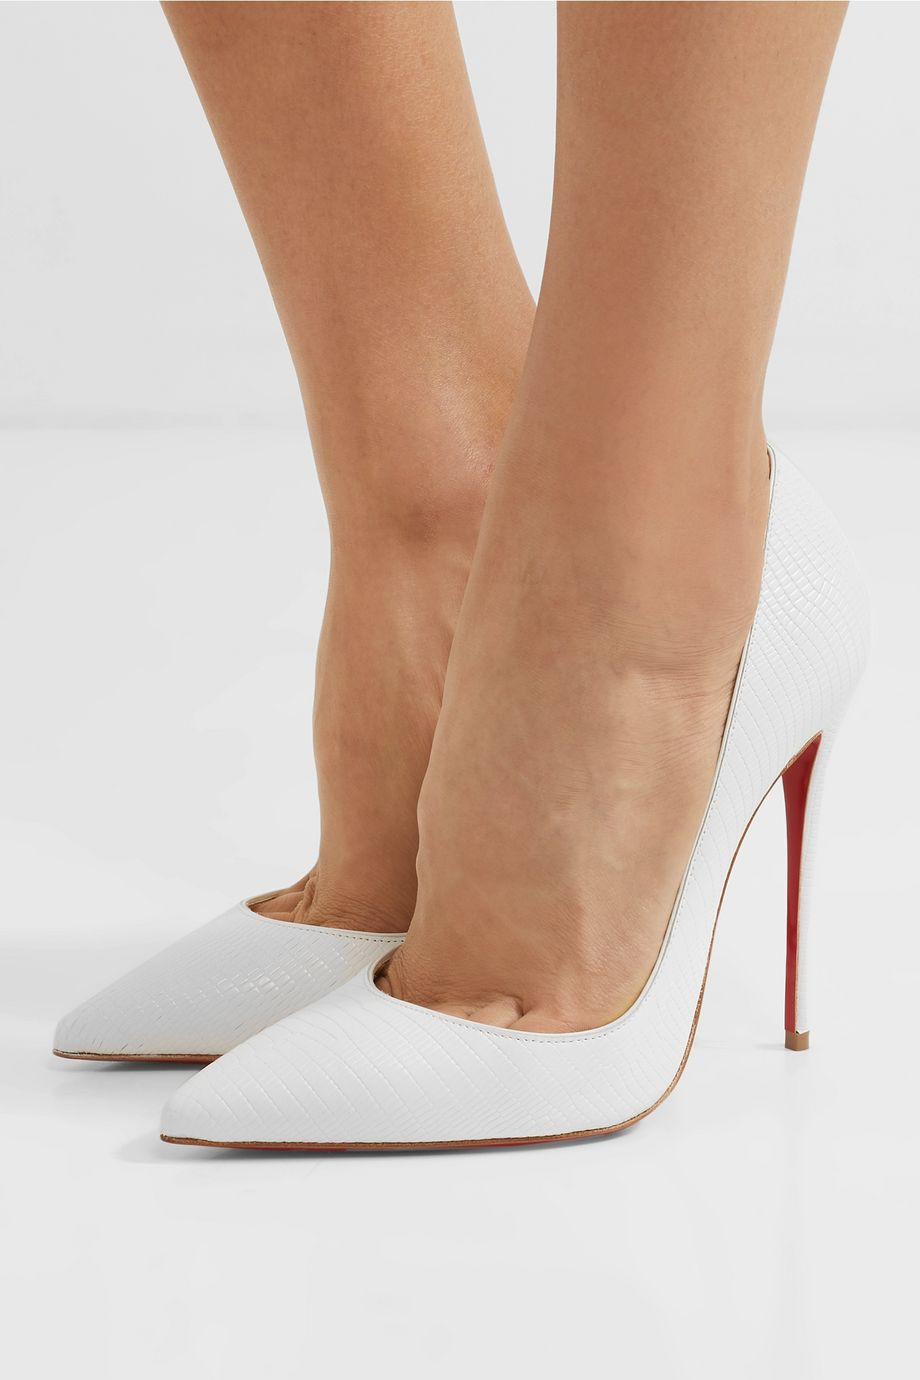 Christian Louboutin Escarpins en cuir effet lézard So Kate 120